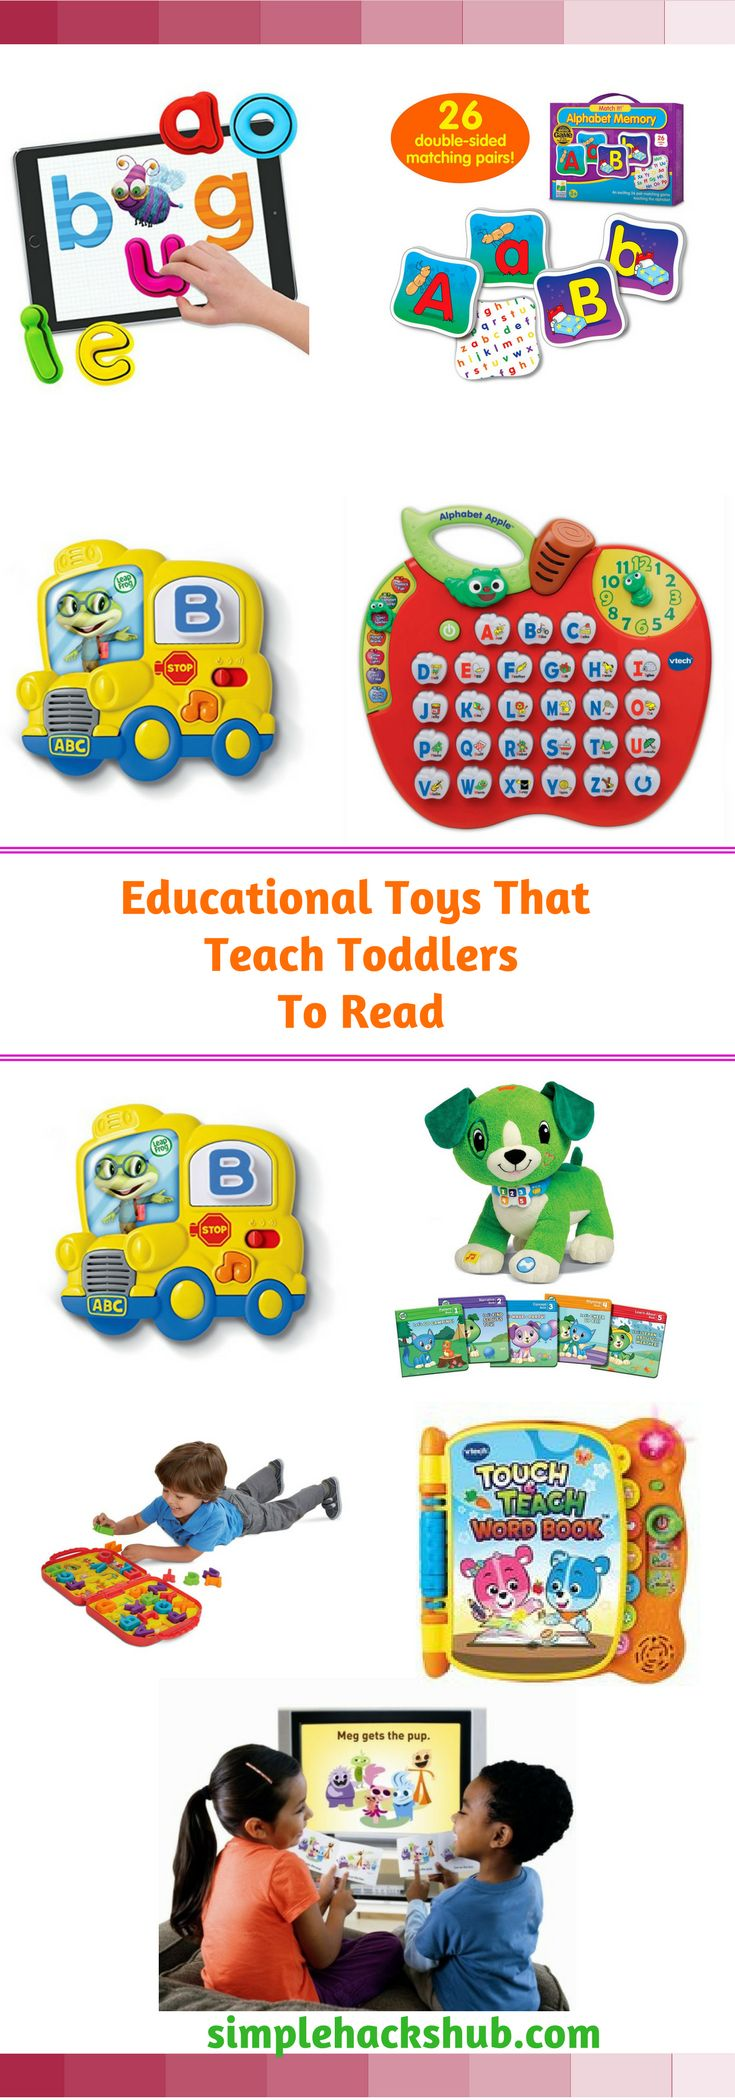 These cool and fun toys will help you to teach phonics to preschoolers and toddlers.  I JUST LOVE the playful tone of them all!  Cute too!